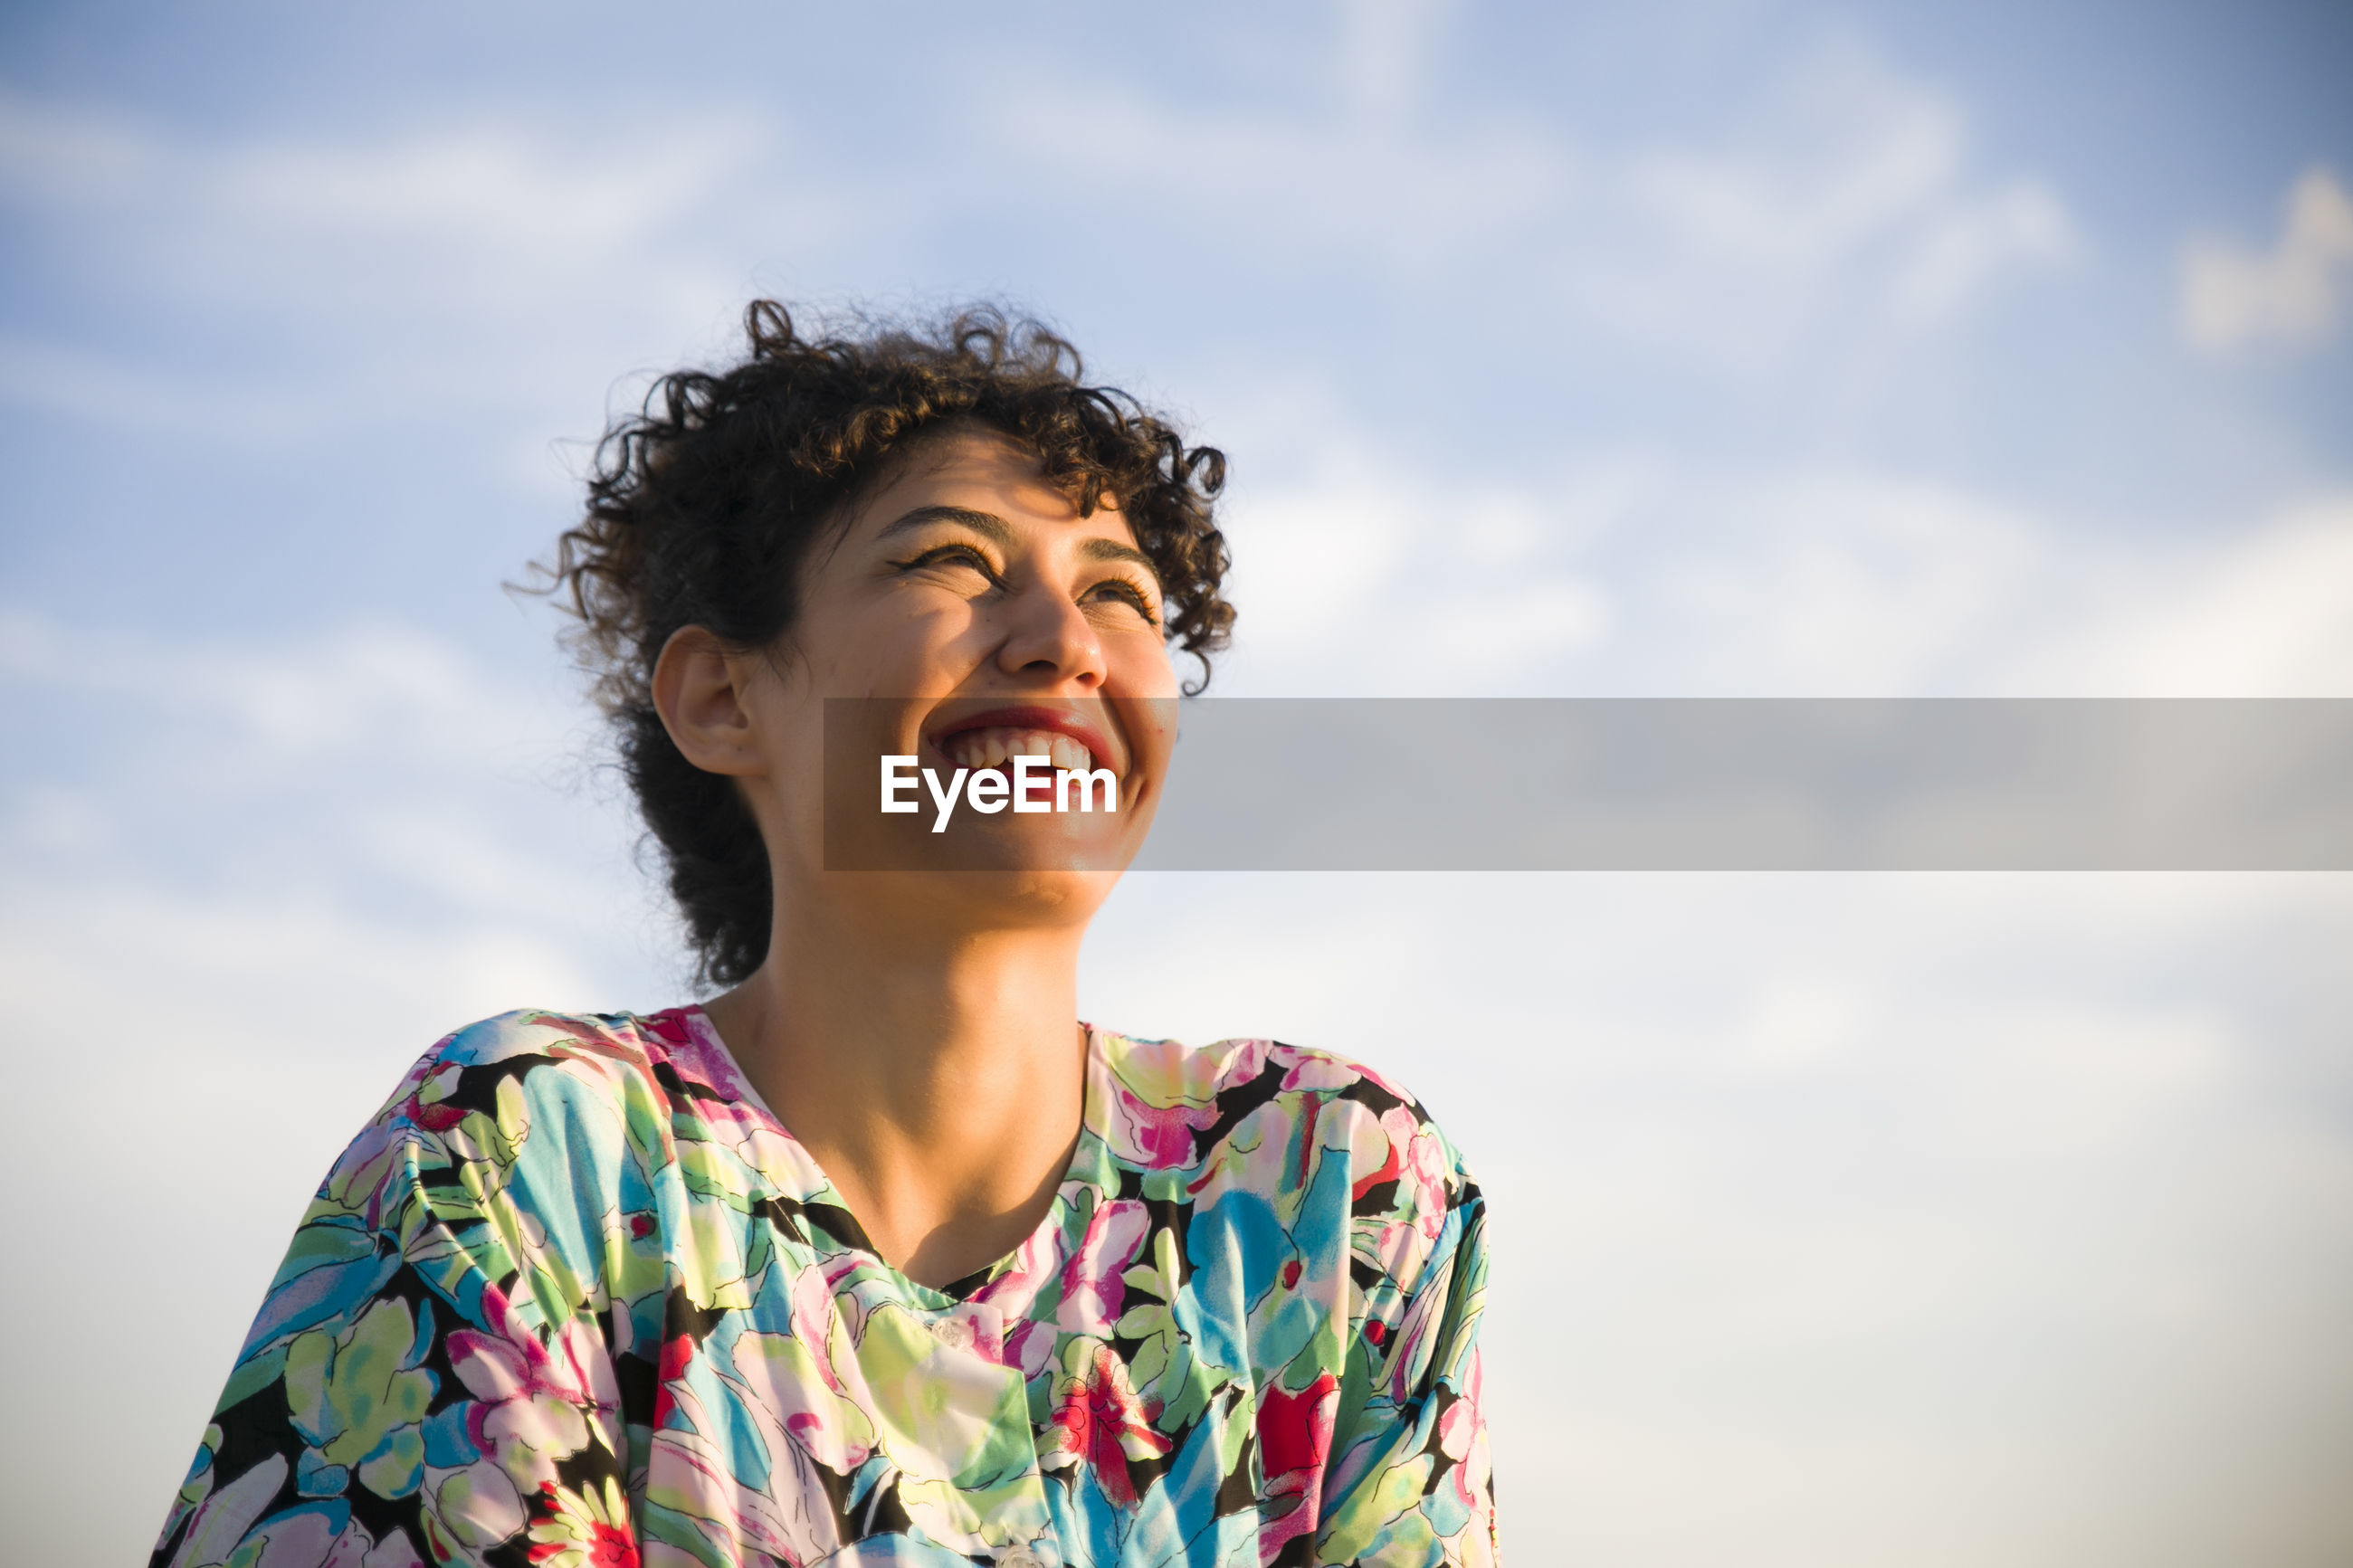 Low angle view of cheerful woman against cloudy sky